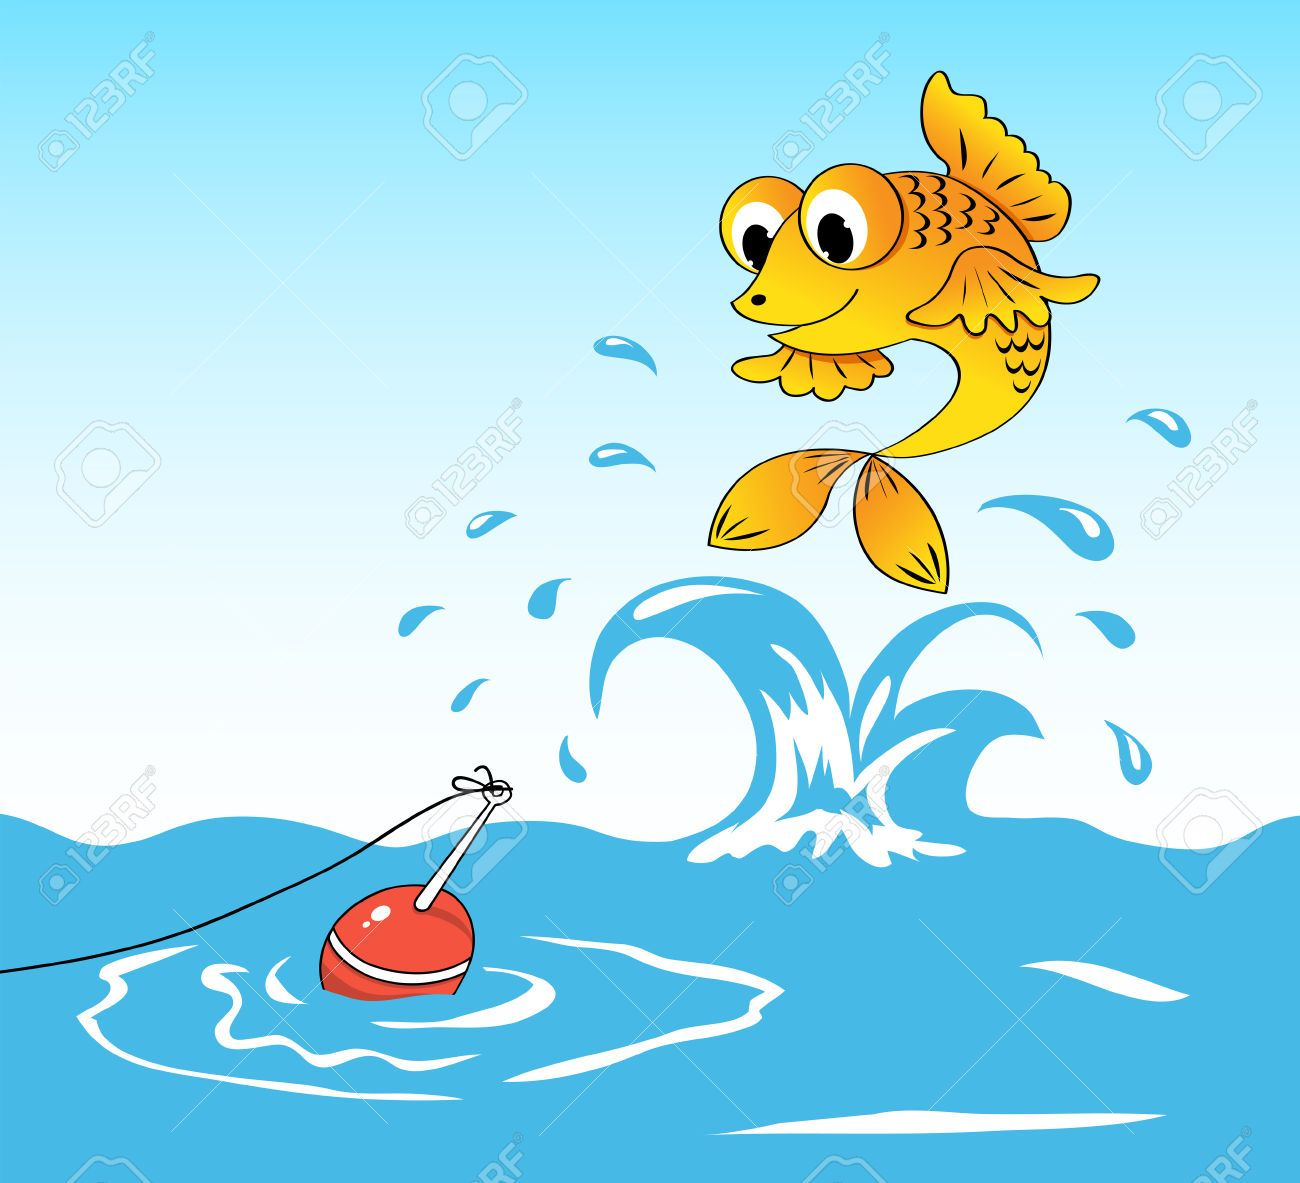 Fish Out Of Water Cliparts, Stock Vector And Royalty Free Fish Out.